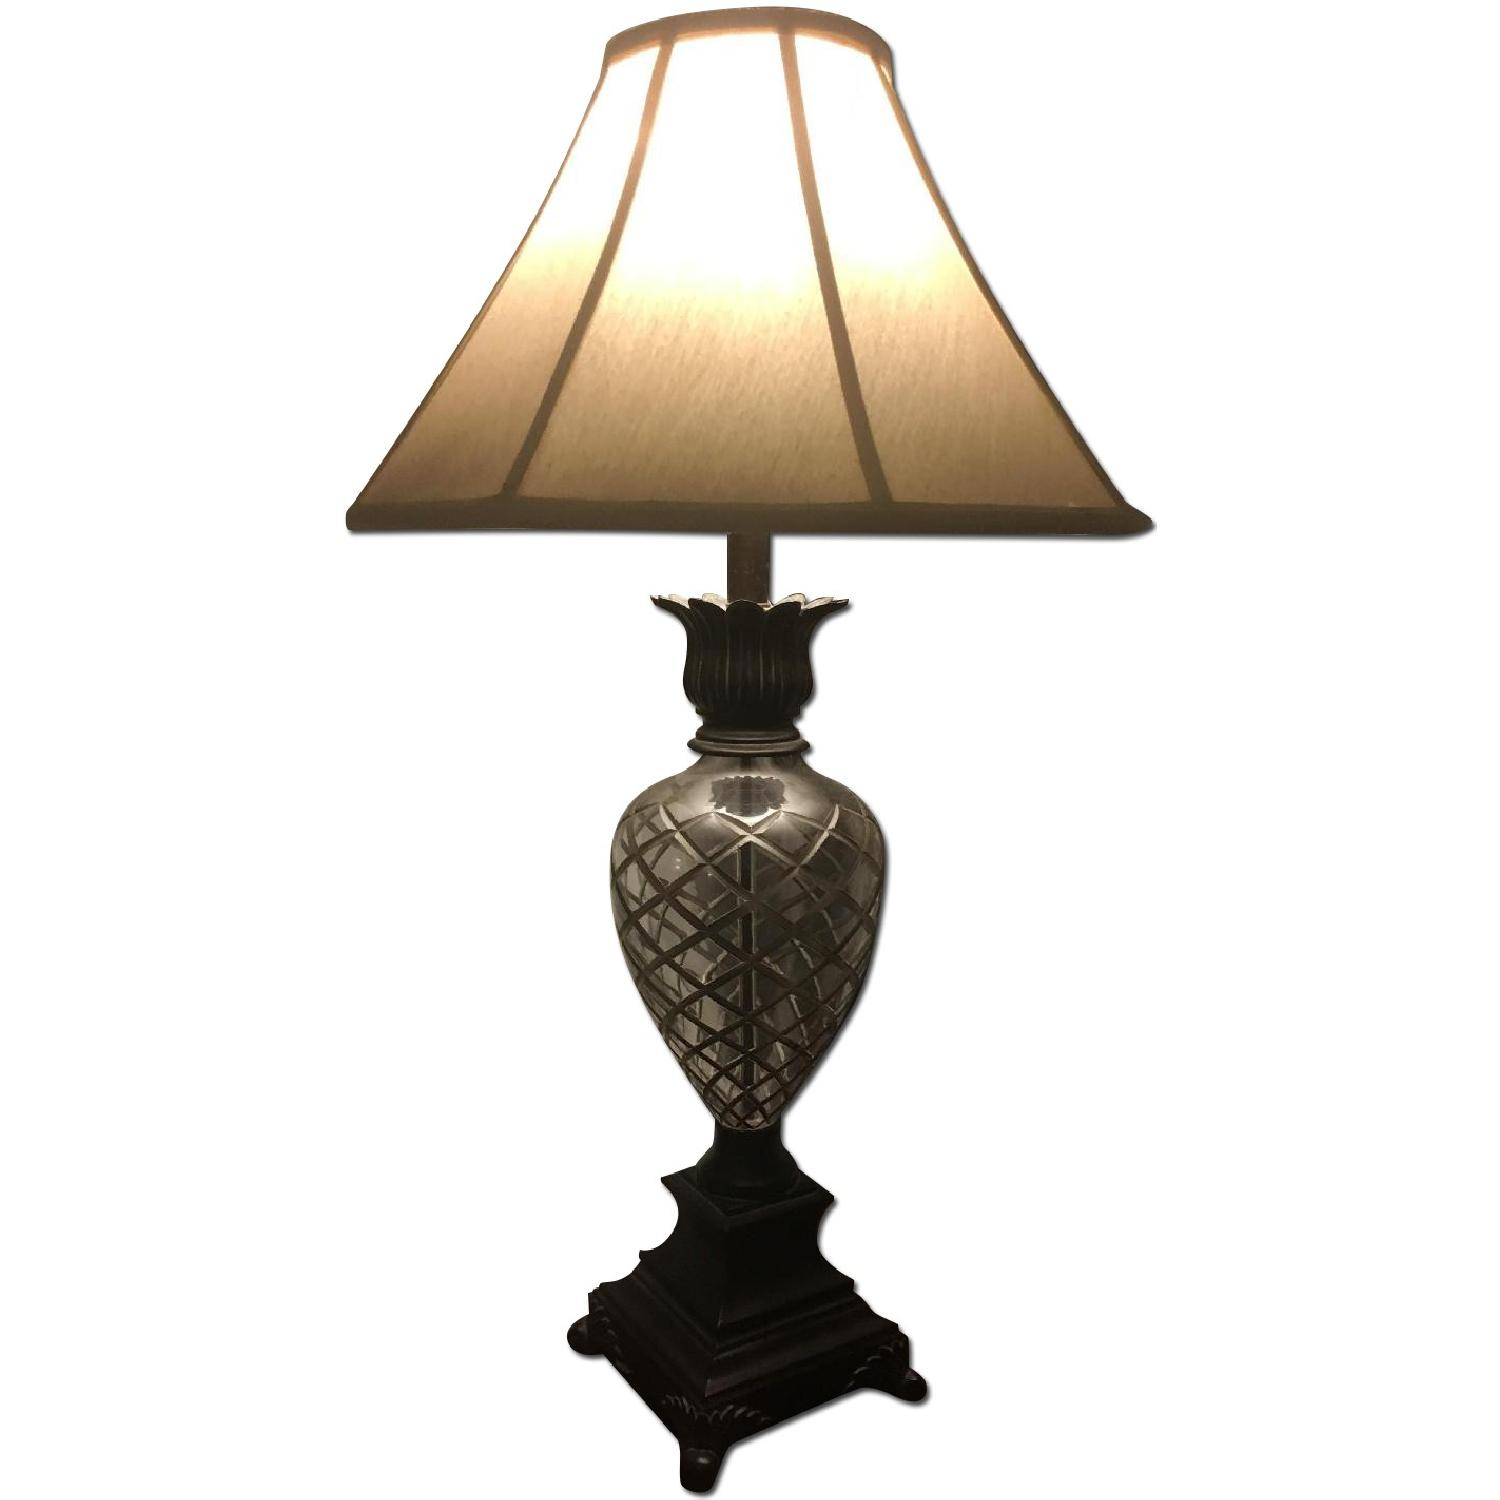 Ethan Allen Pineapple Lamps in Silver - image-0